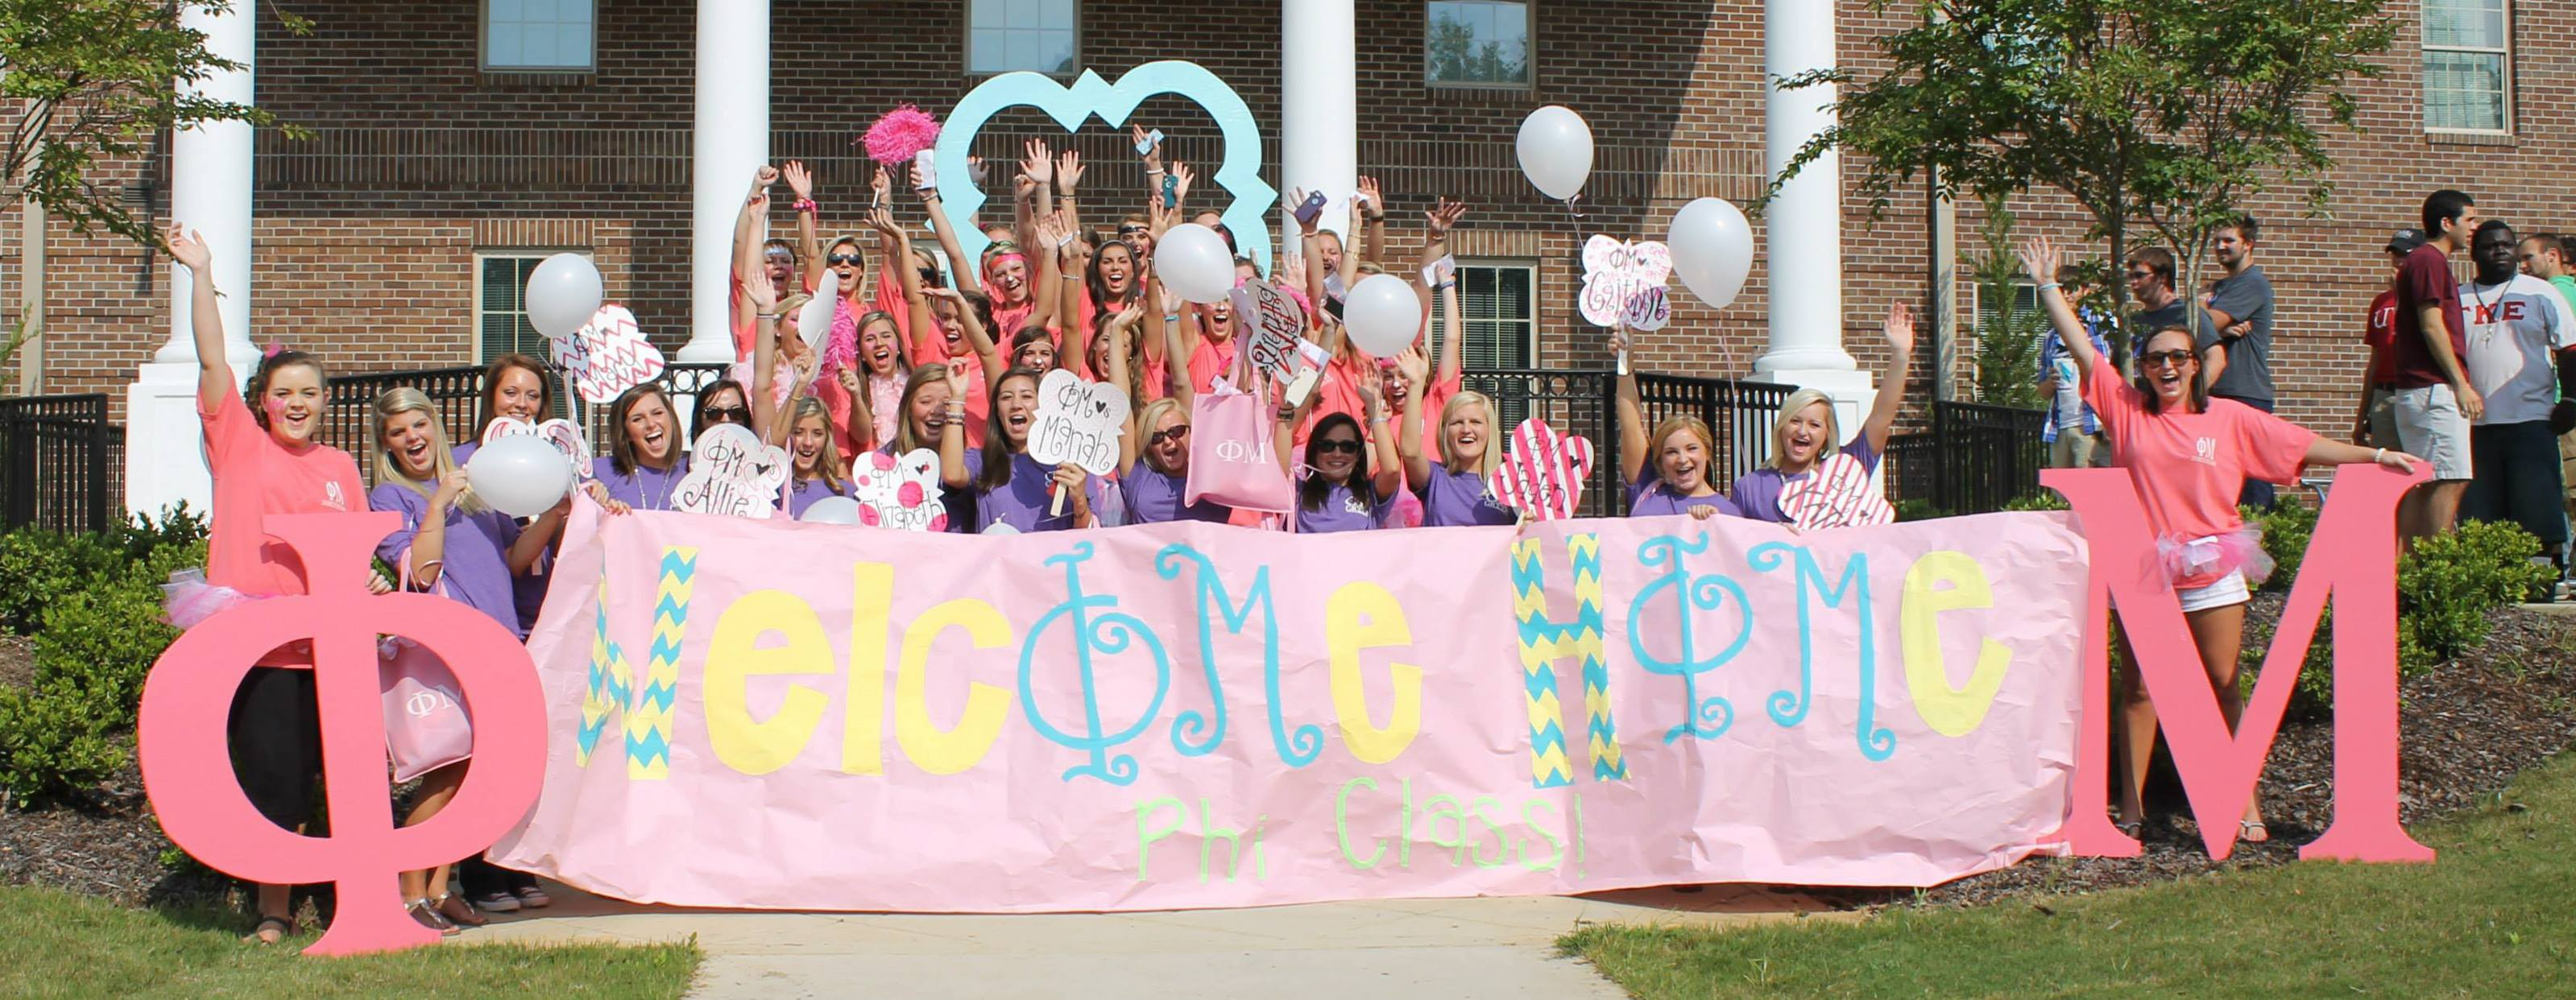 Bid Day Fall 2015